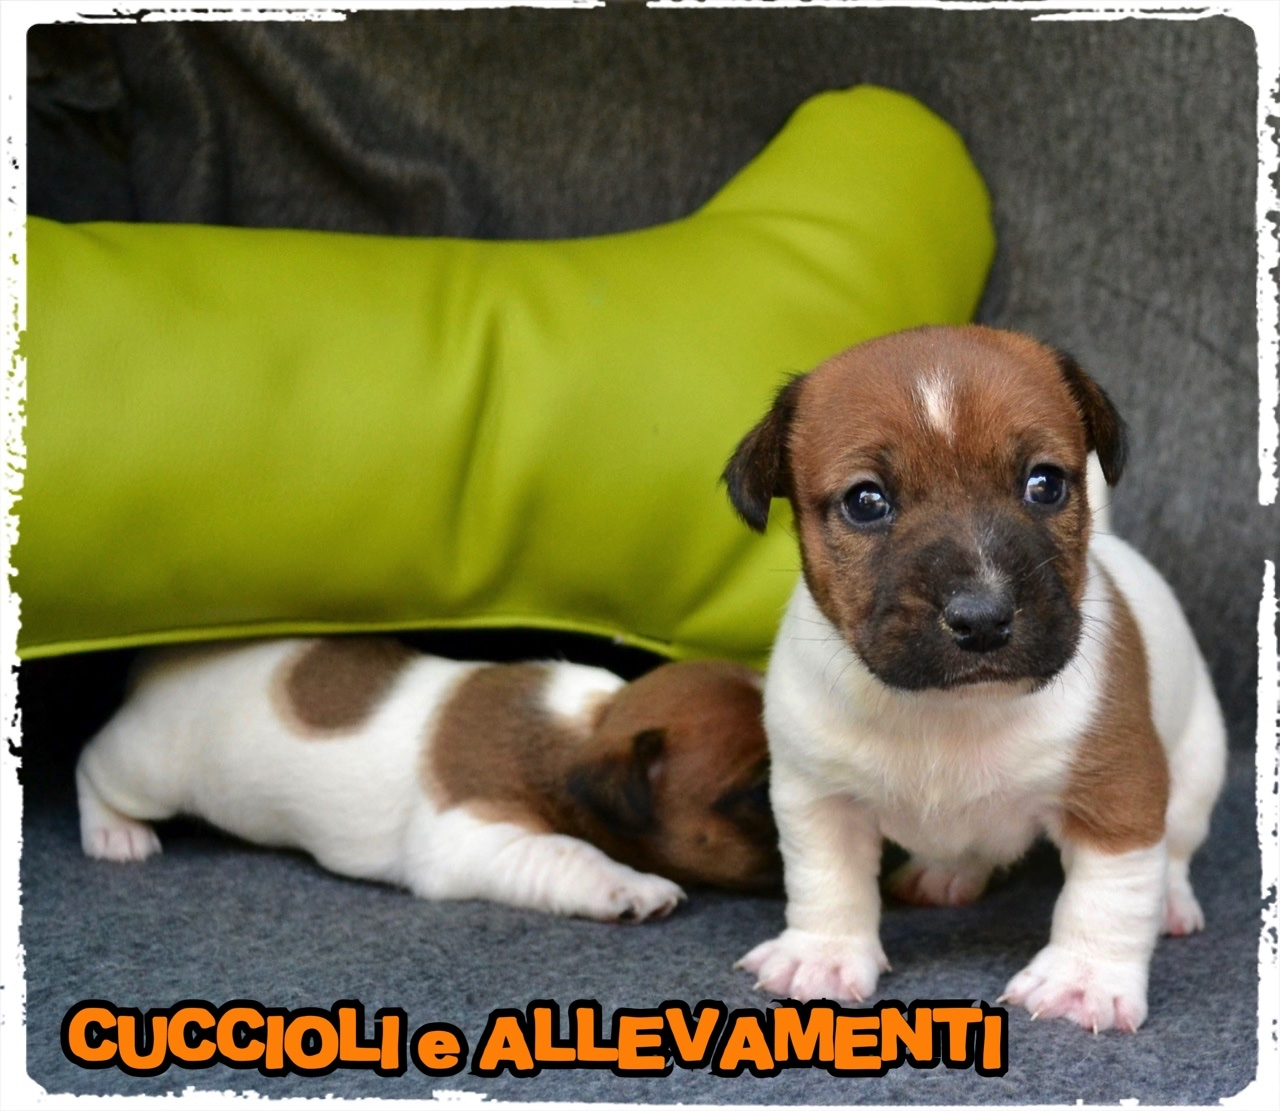 Jack Russell/Russel 40_wm